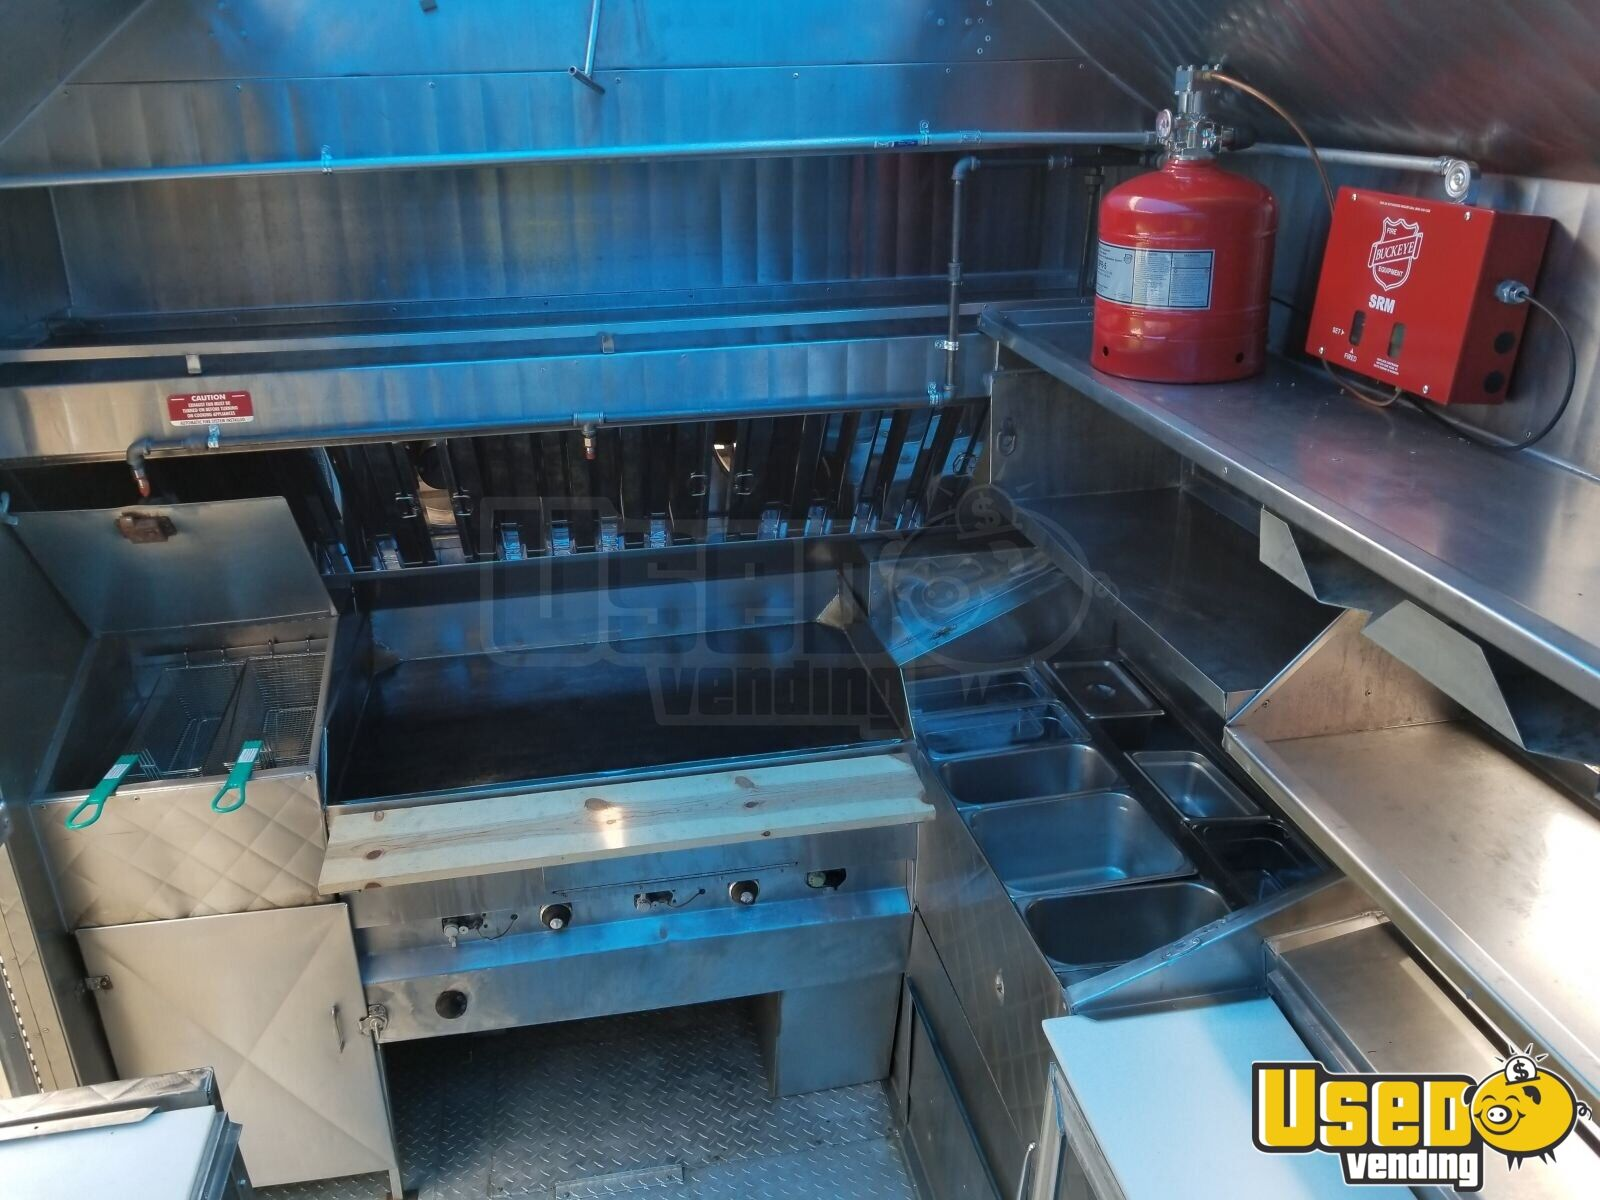 1994 Chevy Step Van P30 Food Truck Food Warmer Texas Gas Engine for Sale - 12